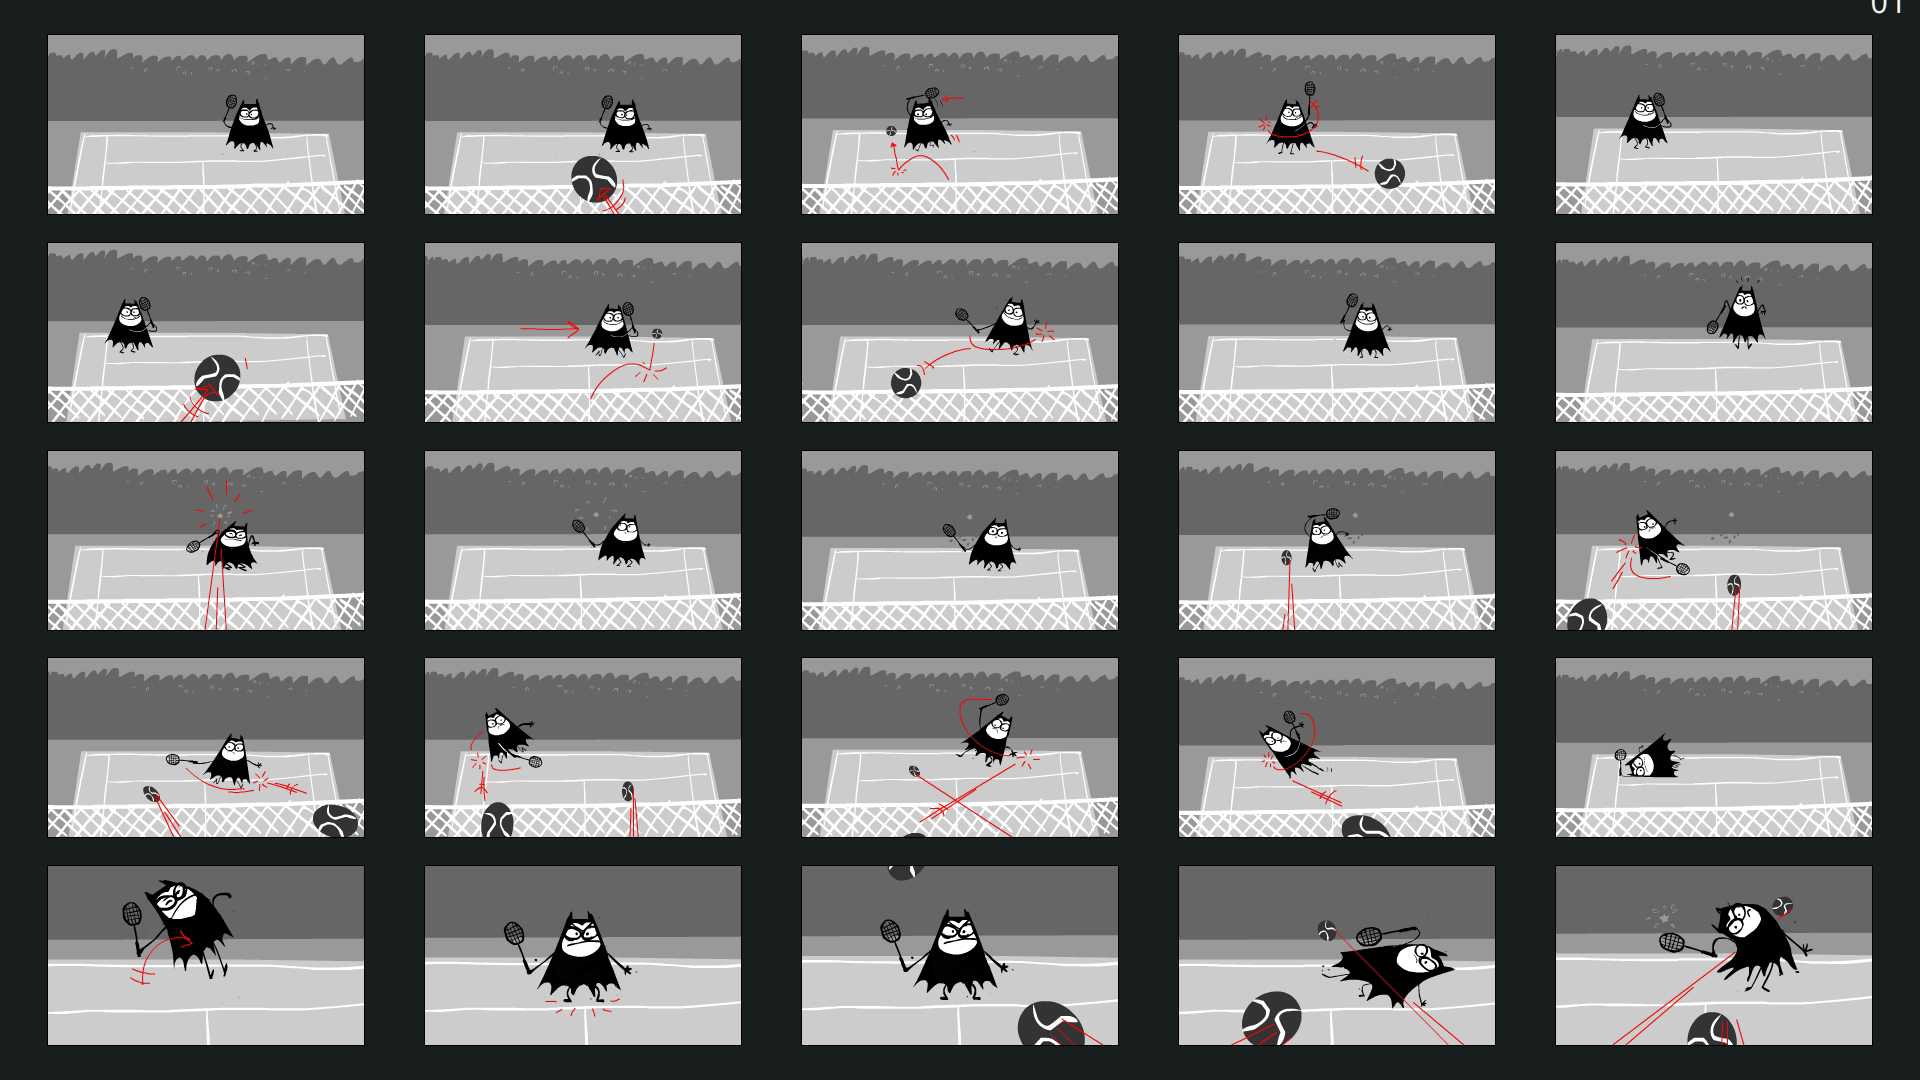 MikeOwens_STORYBOARDS_LilBat_Tennis_Page_1.png